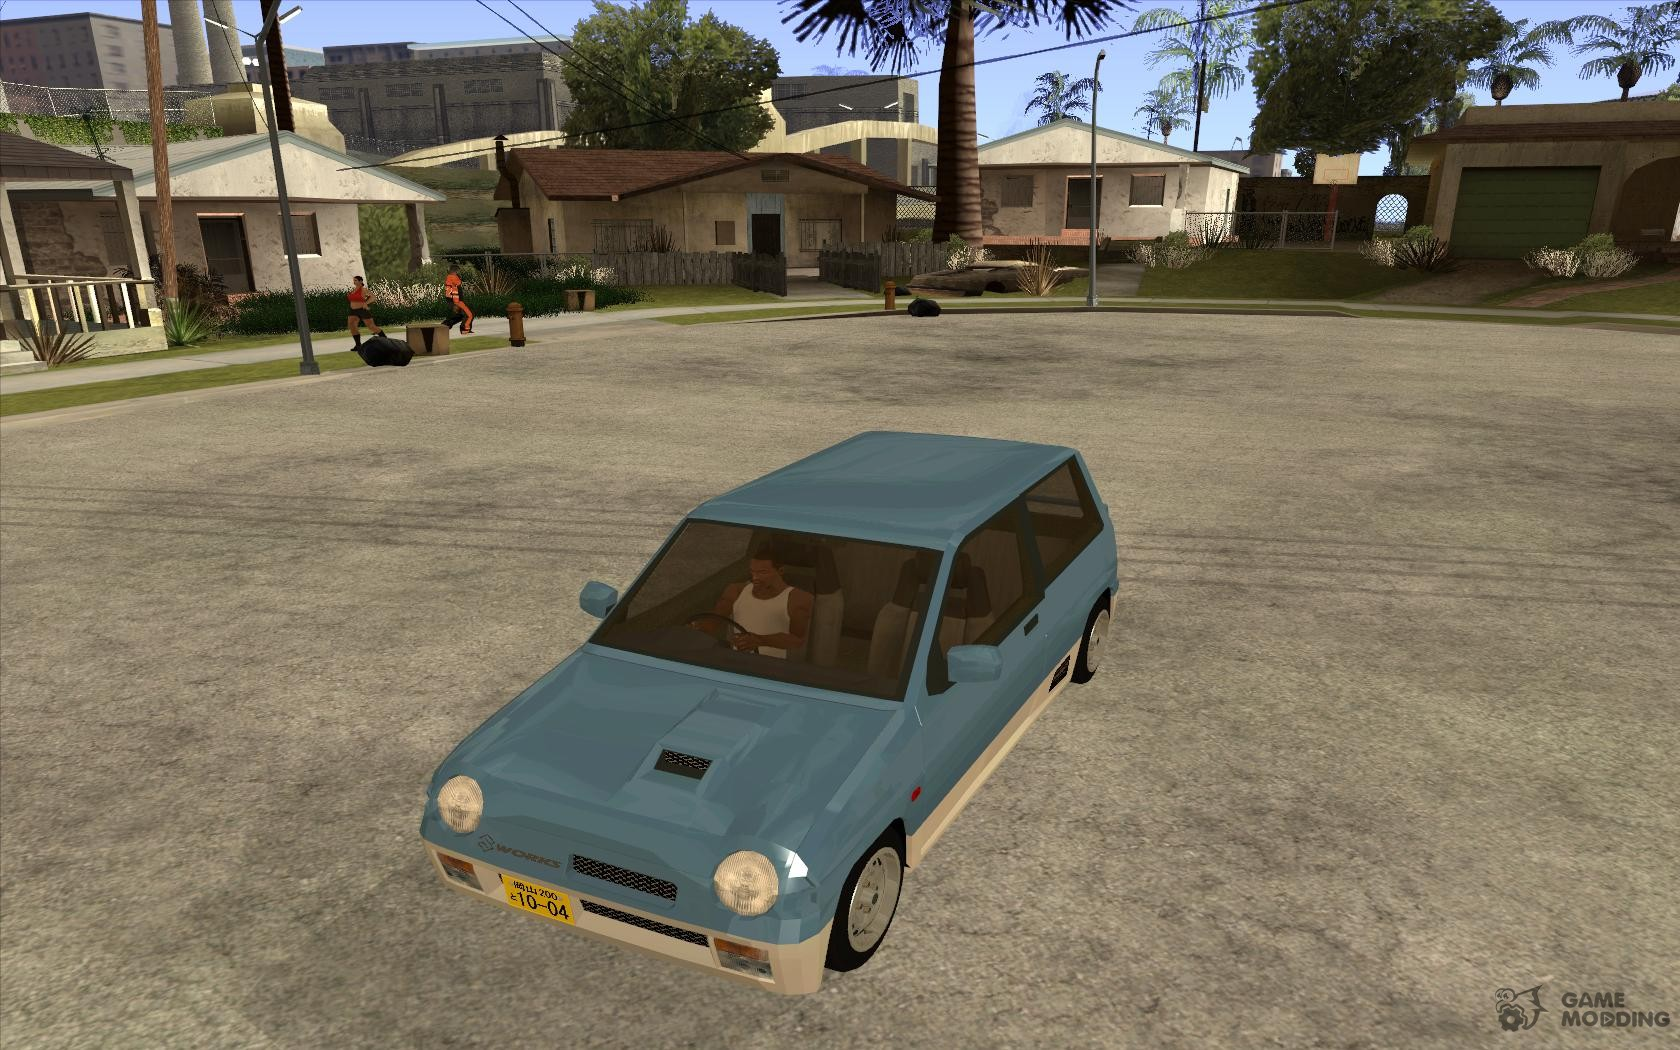 gta sa dating barbara Download gta san andreas hot coffee adult mod 21 unlock the uncensored interactive sex-games in san andreas for sure that you've heard of this mod of gta san andreas.